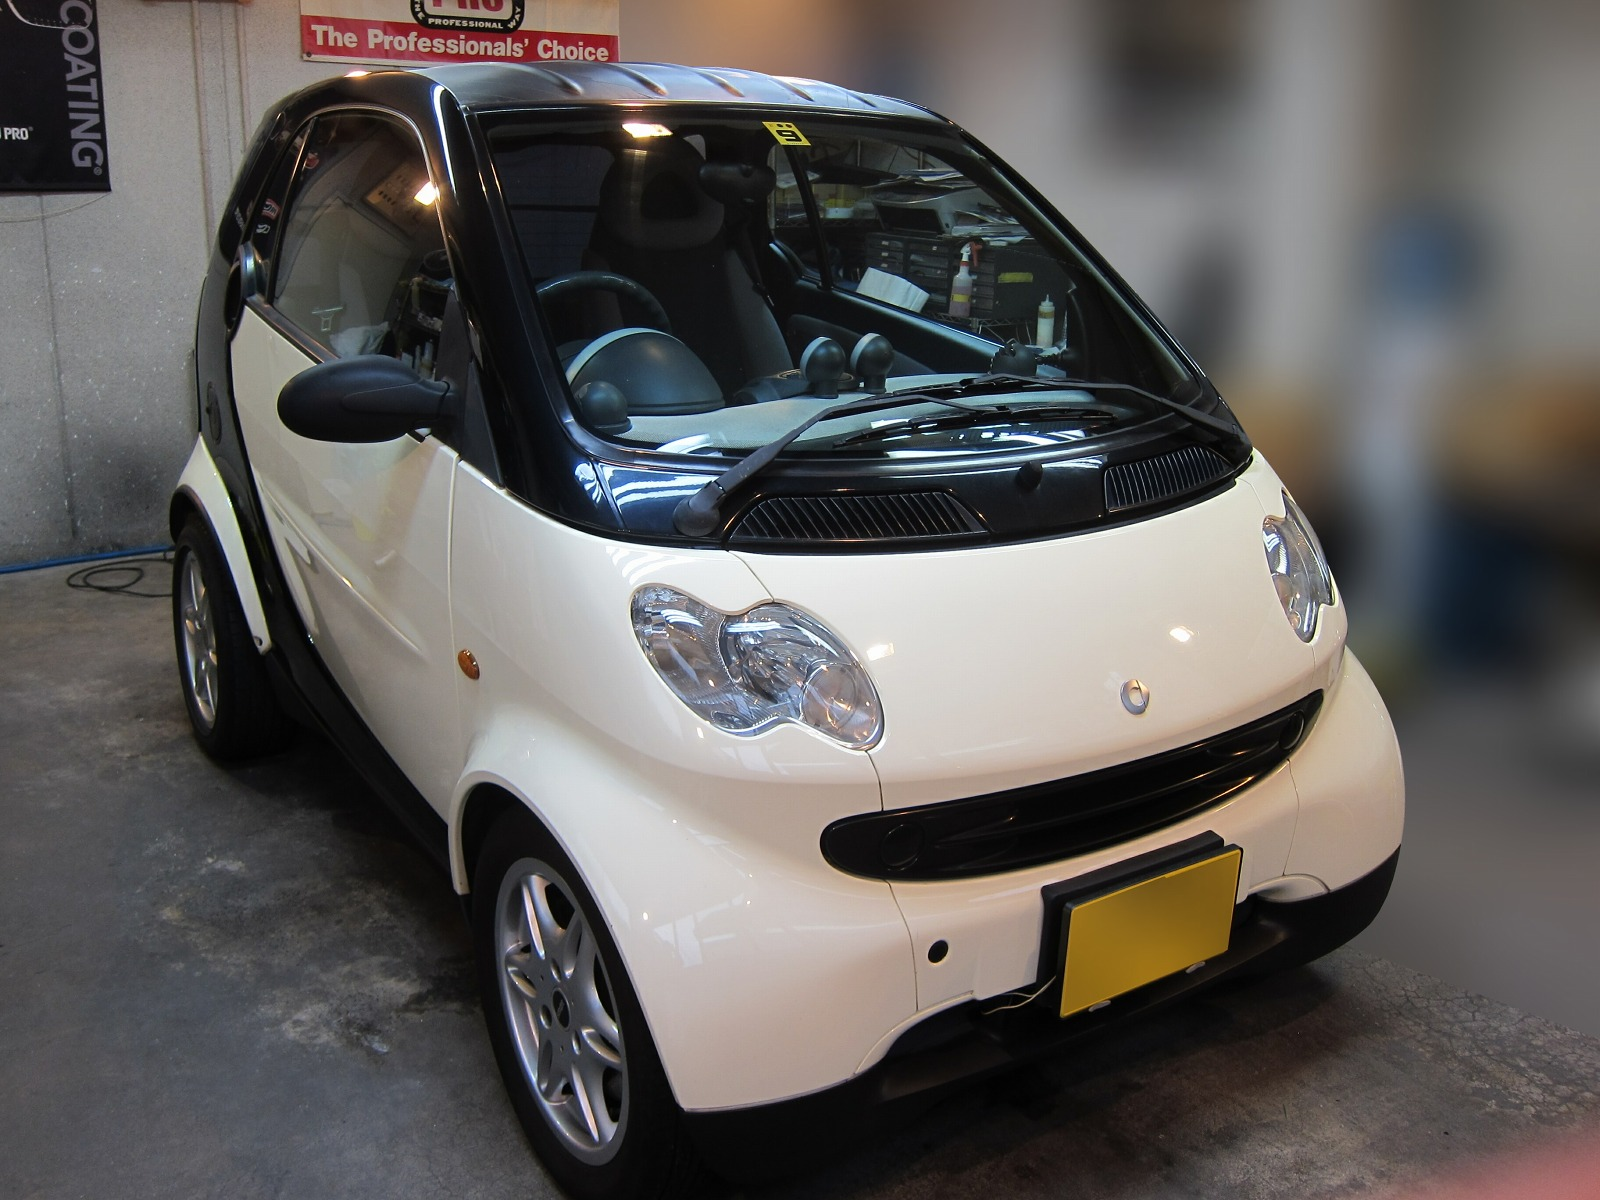 20150405-smart-fortwo-01